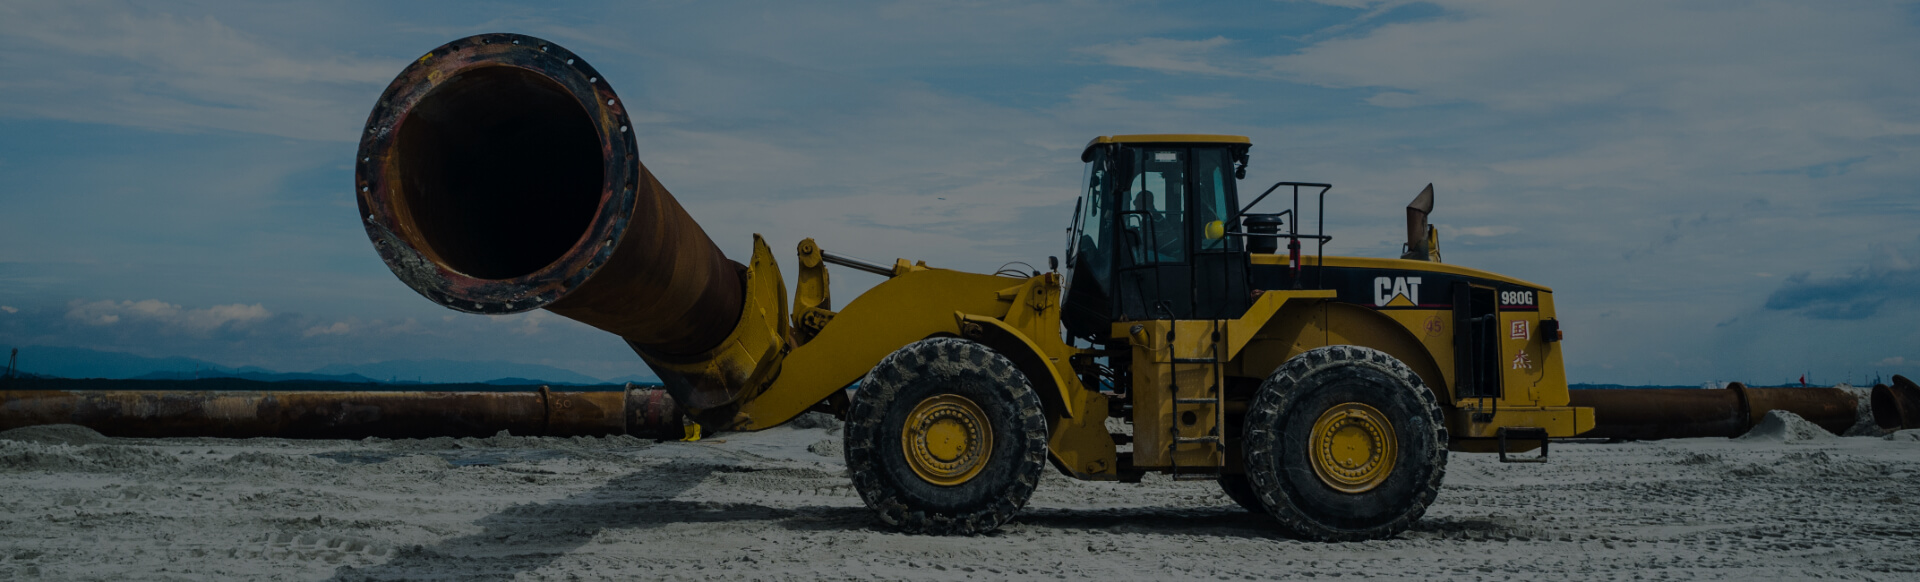 banner-middle-home Tractors Singapore | Authorised Caterpillar Equipment Dealer